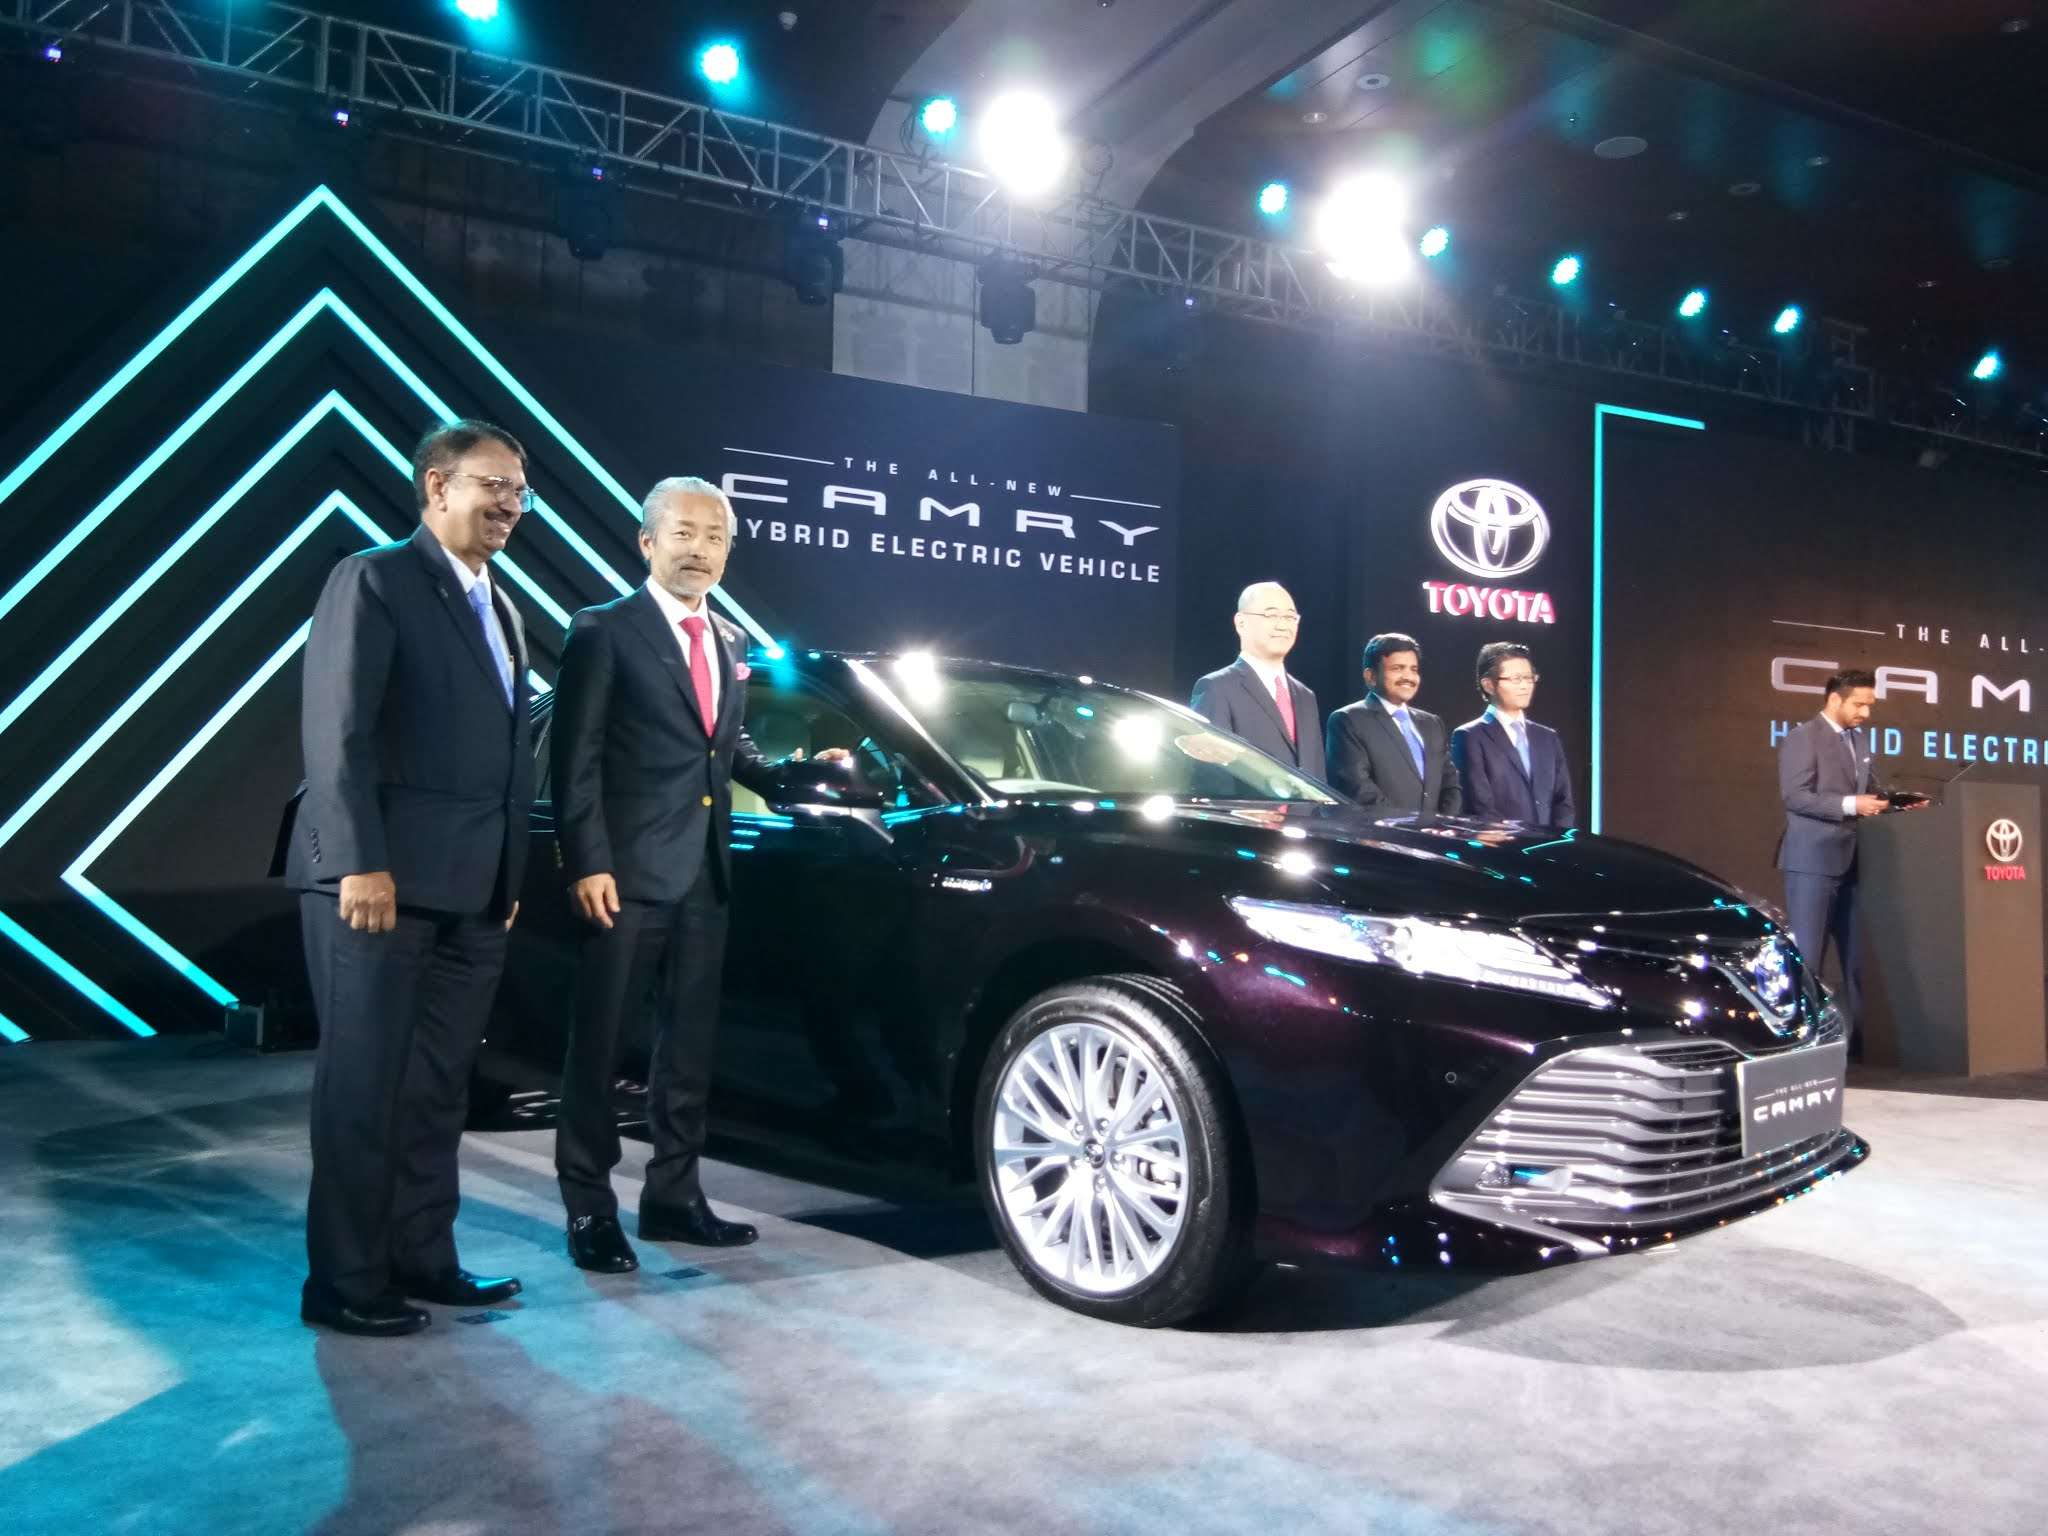 toyota camry: india breaks into top 10 markets for toyota motor